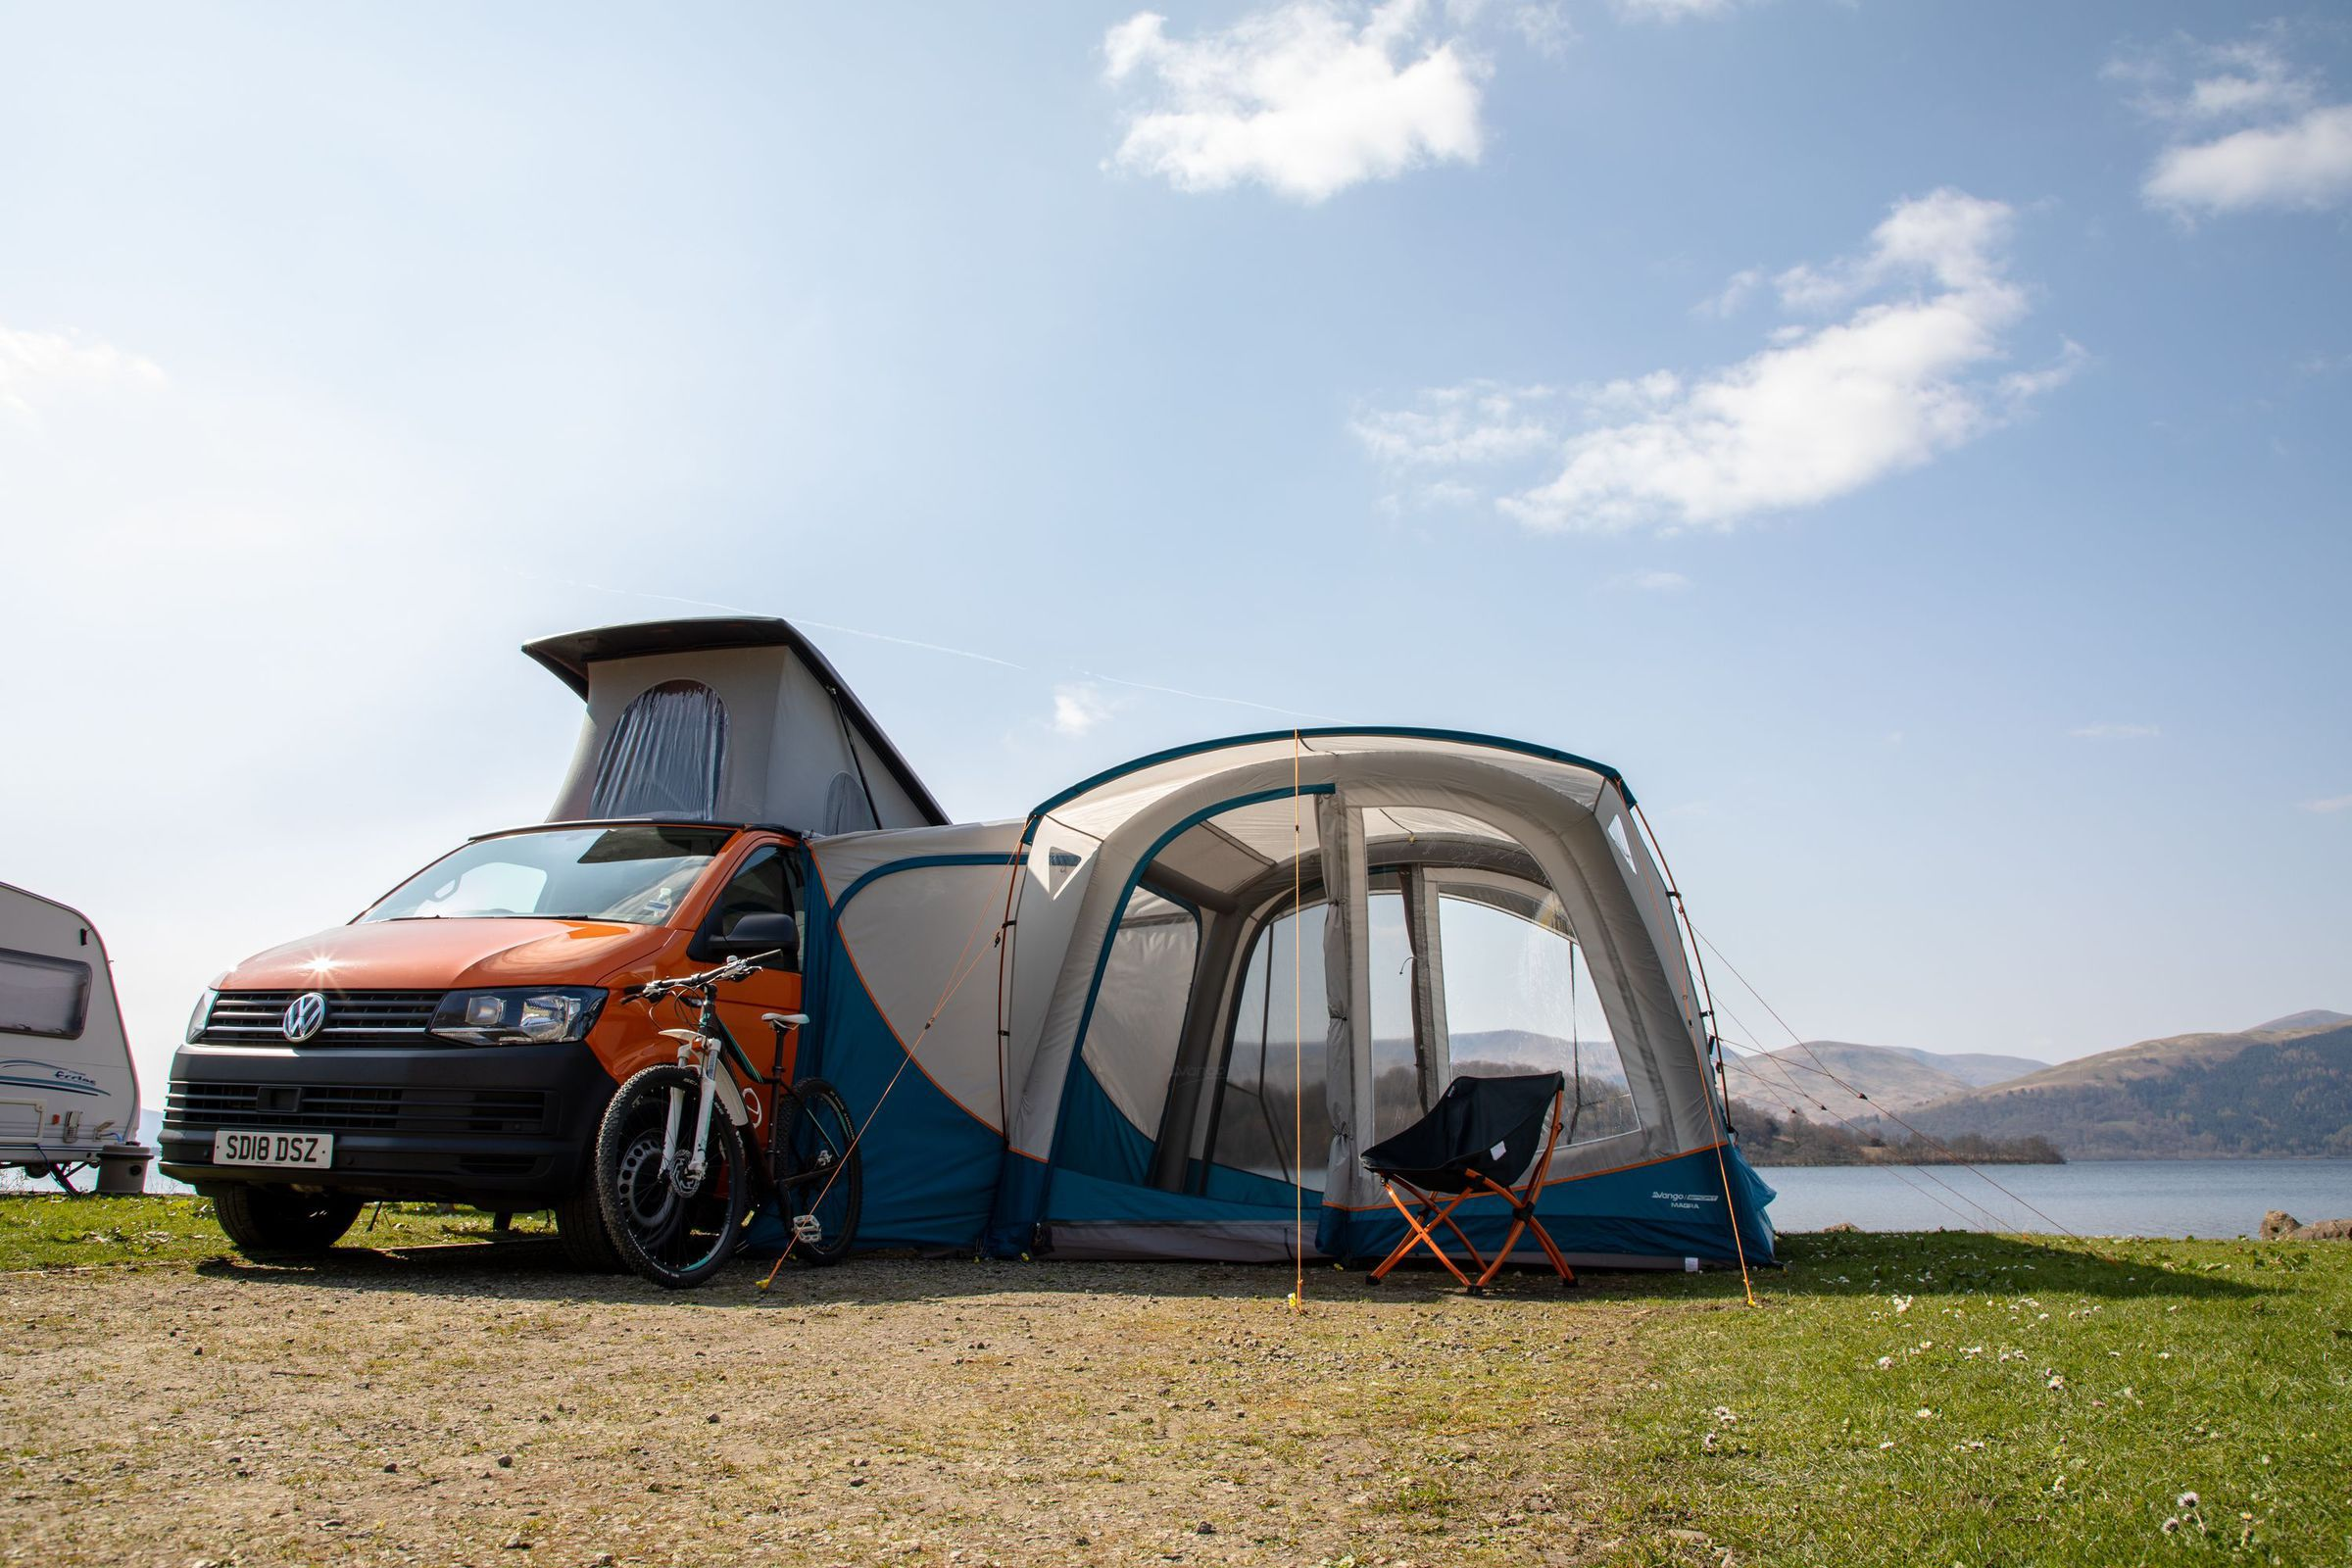 Vango Magra Vw Low Driveaway Awning Norwich Camping3